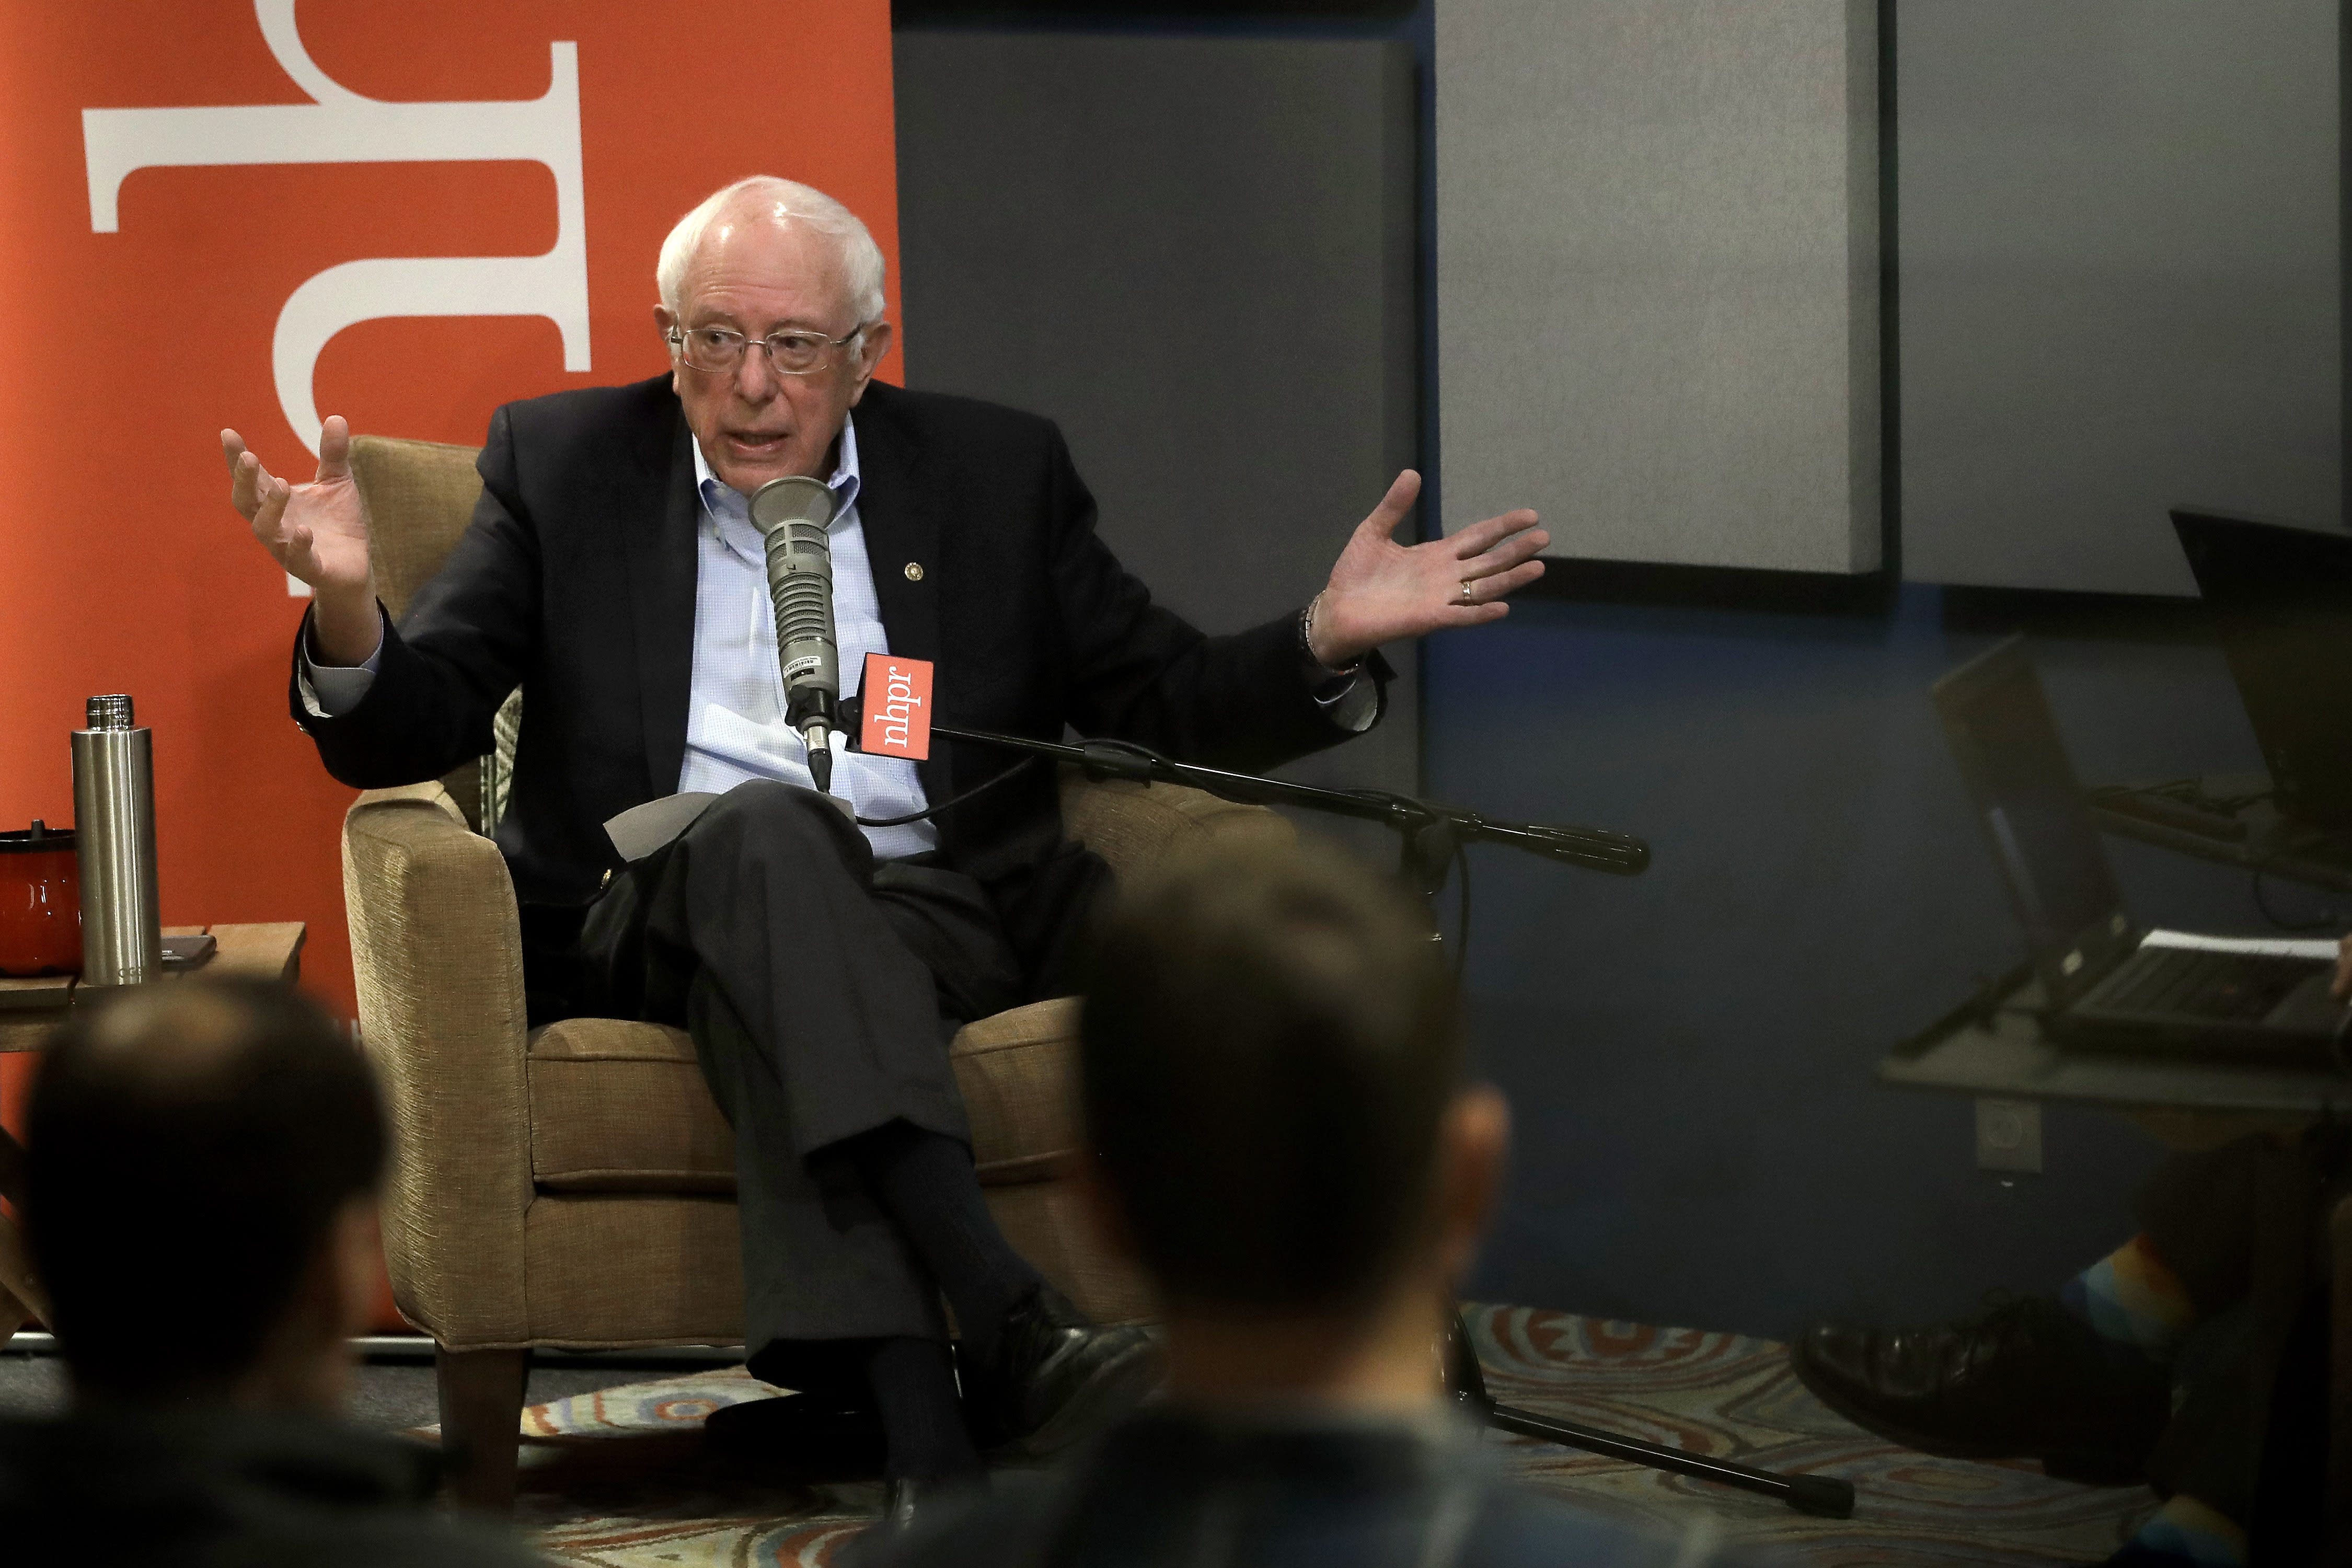 Democratic presidential candidate Sen. Bernie Sanders, I-Vt., speaks during a forum broadcast on radio in a New Hampshire Public Radio station, Sunday, Jan. 19, 2020, in Concord, N.H. (AP Photo/Steven Senne)